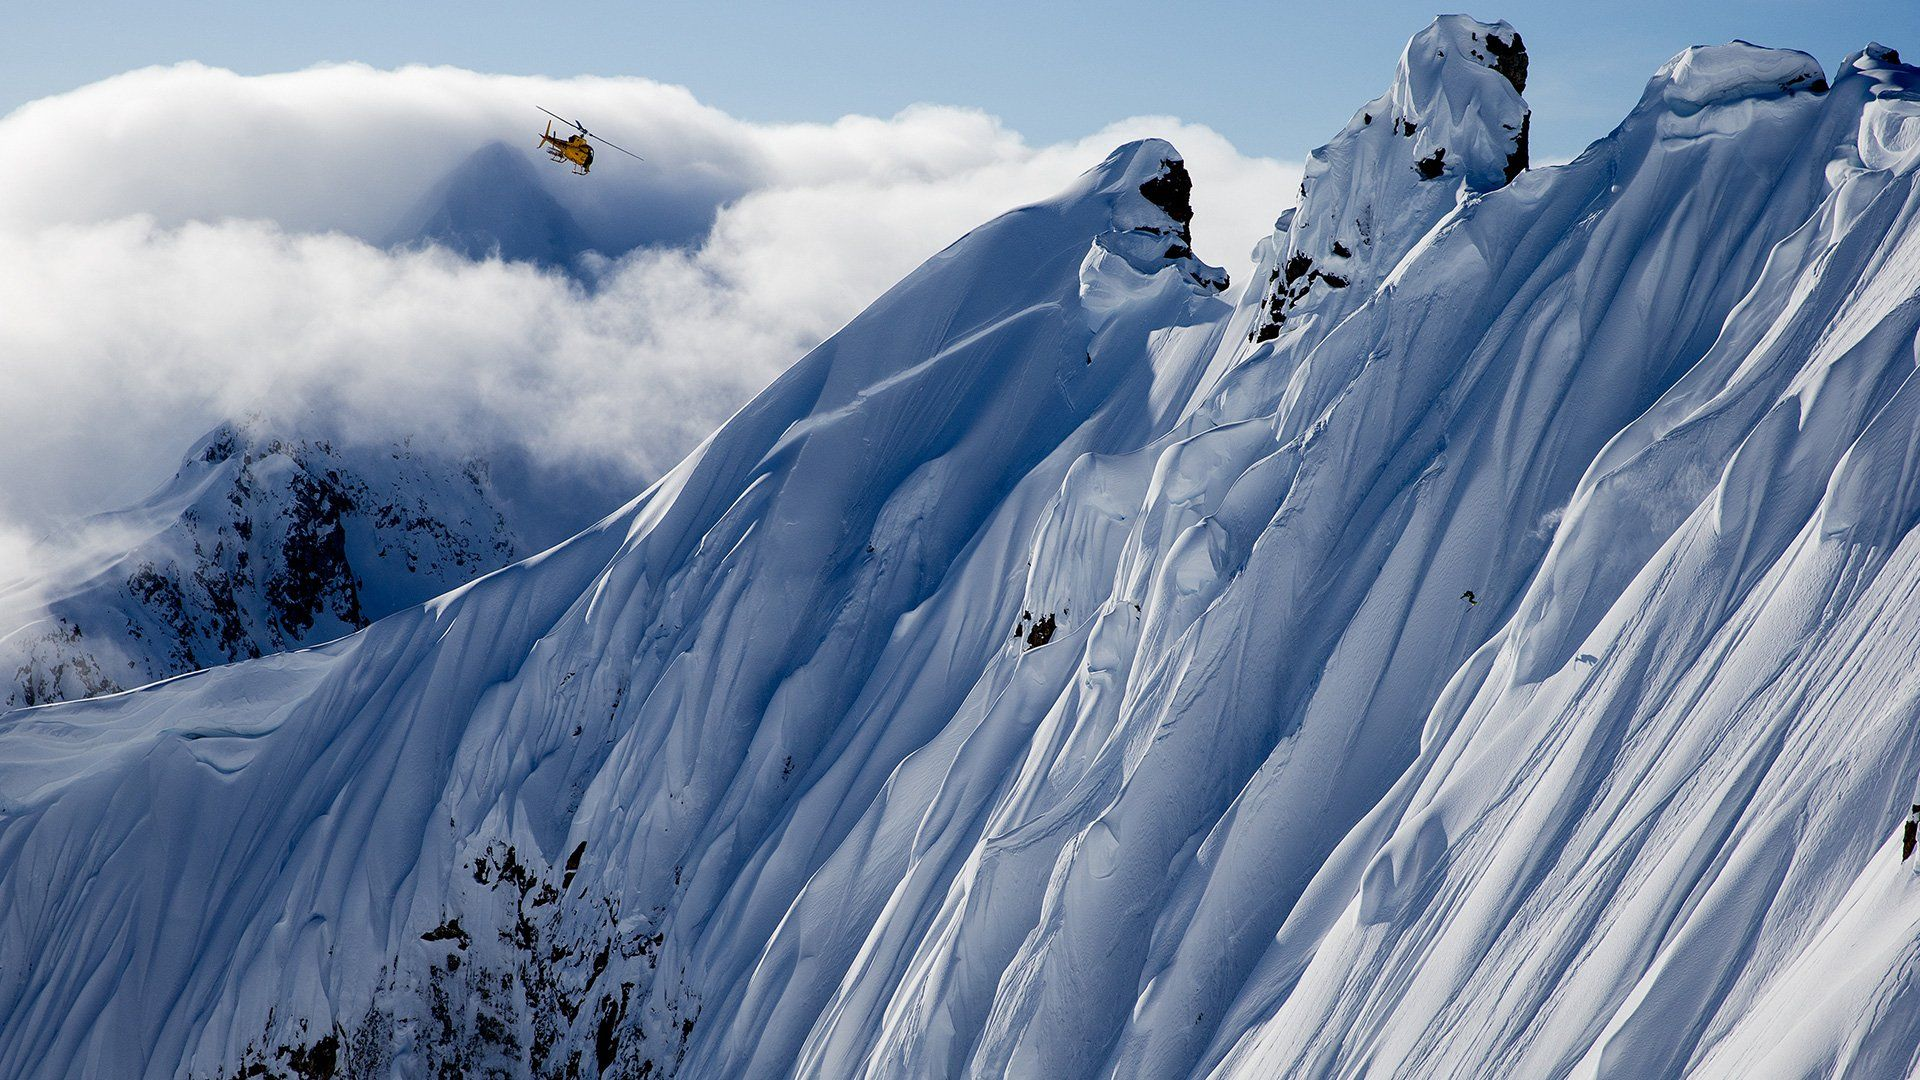 Dwarfed by huge, snow-covered, sheer cliffs near Juneau, Alaska, a member of the Legs of Steel group is barely visible skiing almost vertically downhill as a helicopter hovers above.